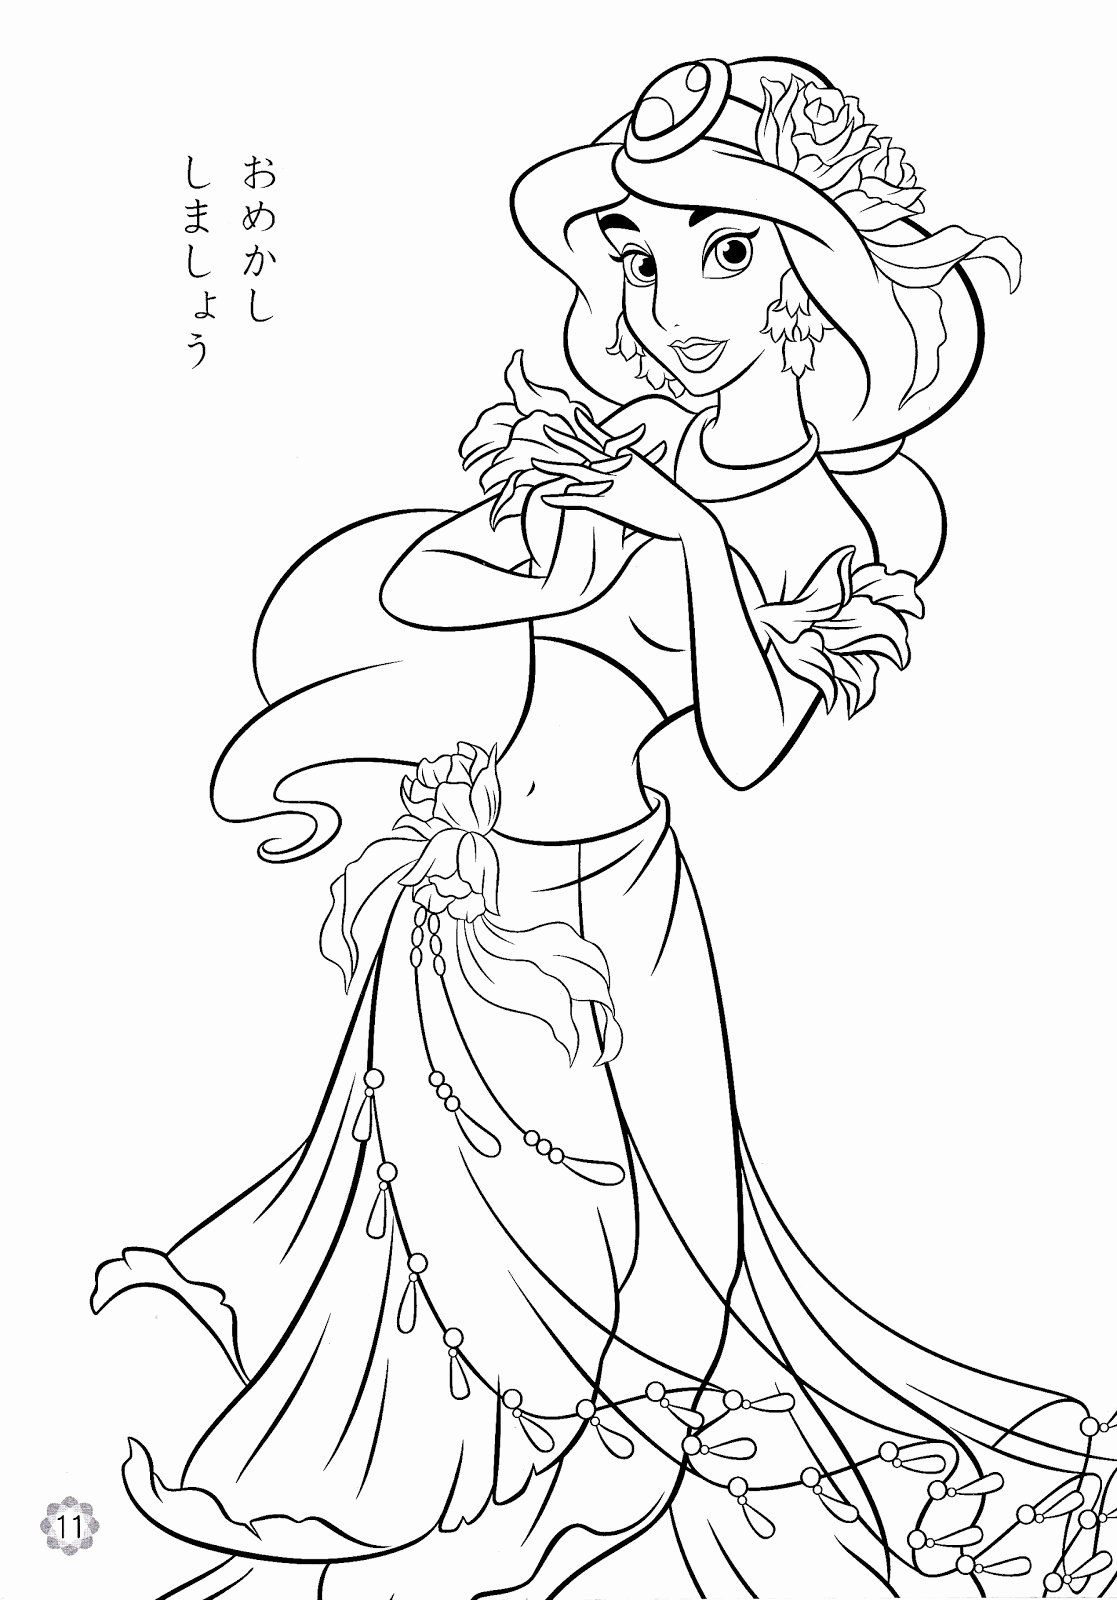 Free Disney Coloring Sheets Beautiful Unique Disney All Princess Coloring Pages Libr In 2020 Ariel Coloring Pages Disney Princess Coloring Pages Mermaid Coloring Pages